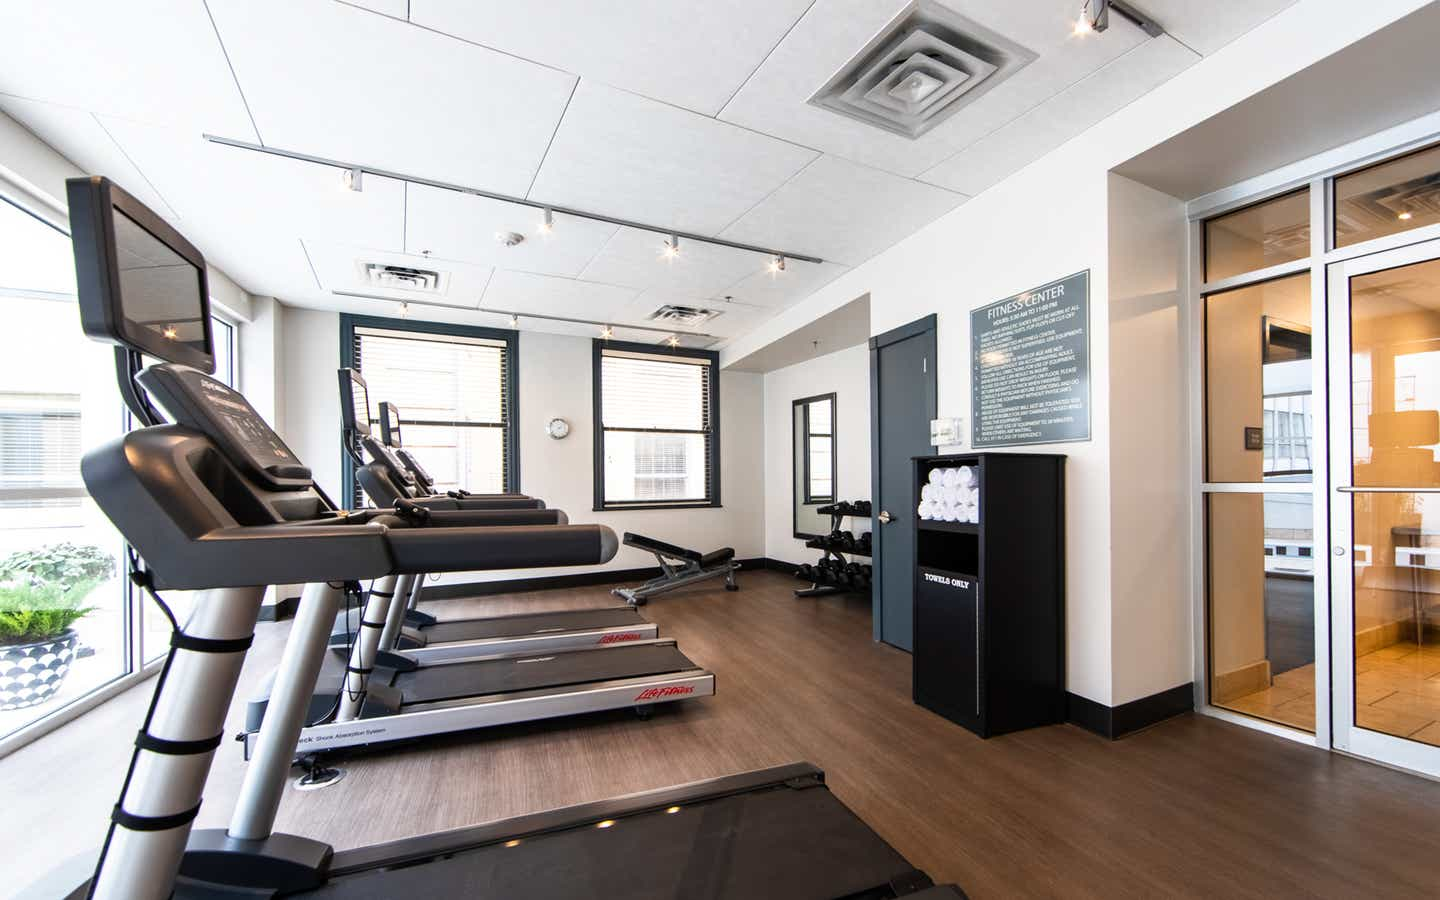 Fitness center with treadmills and free weights at New Orleans Resort in Louisiana.